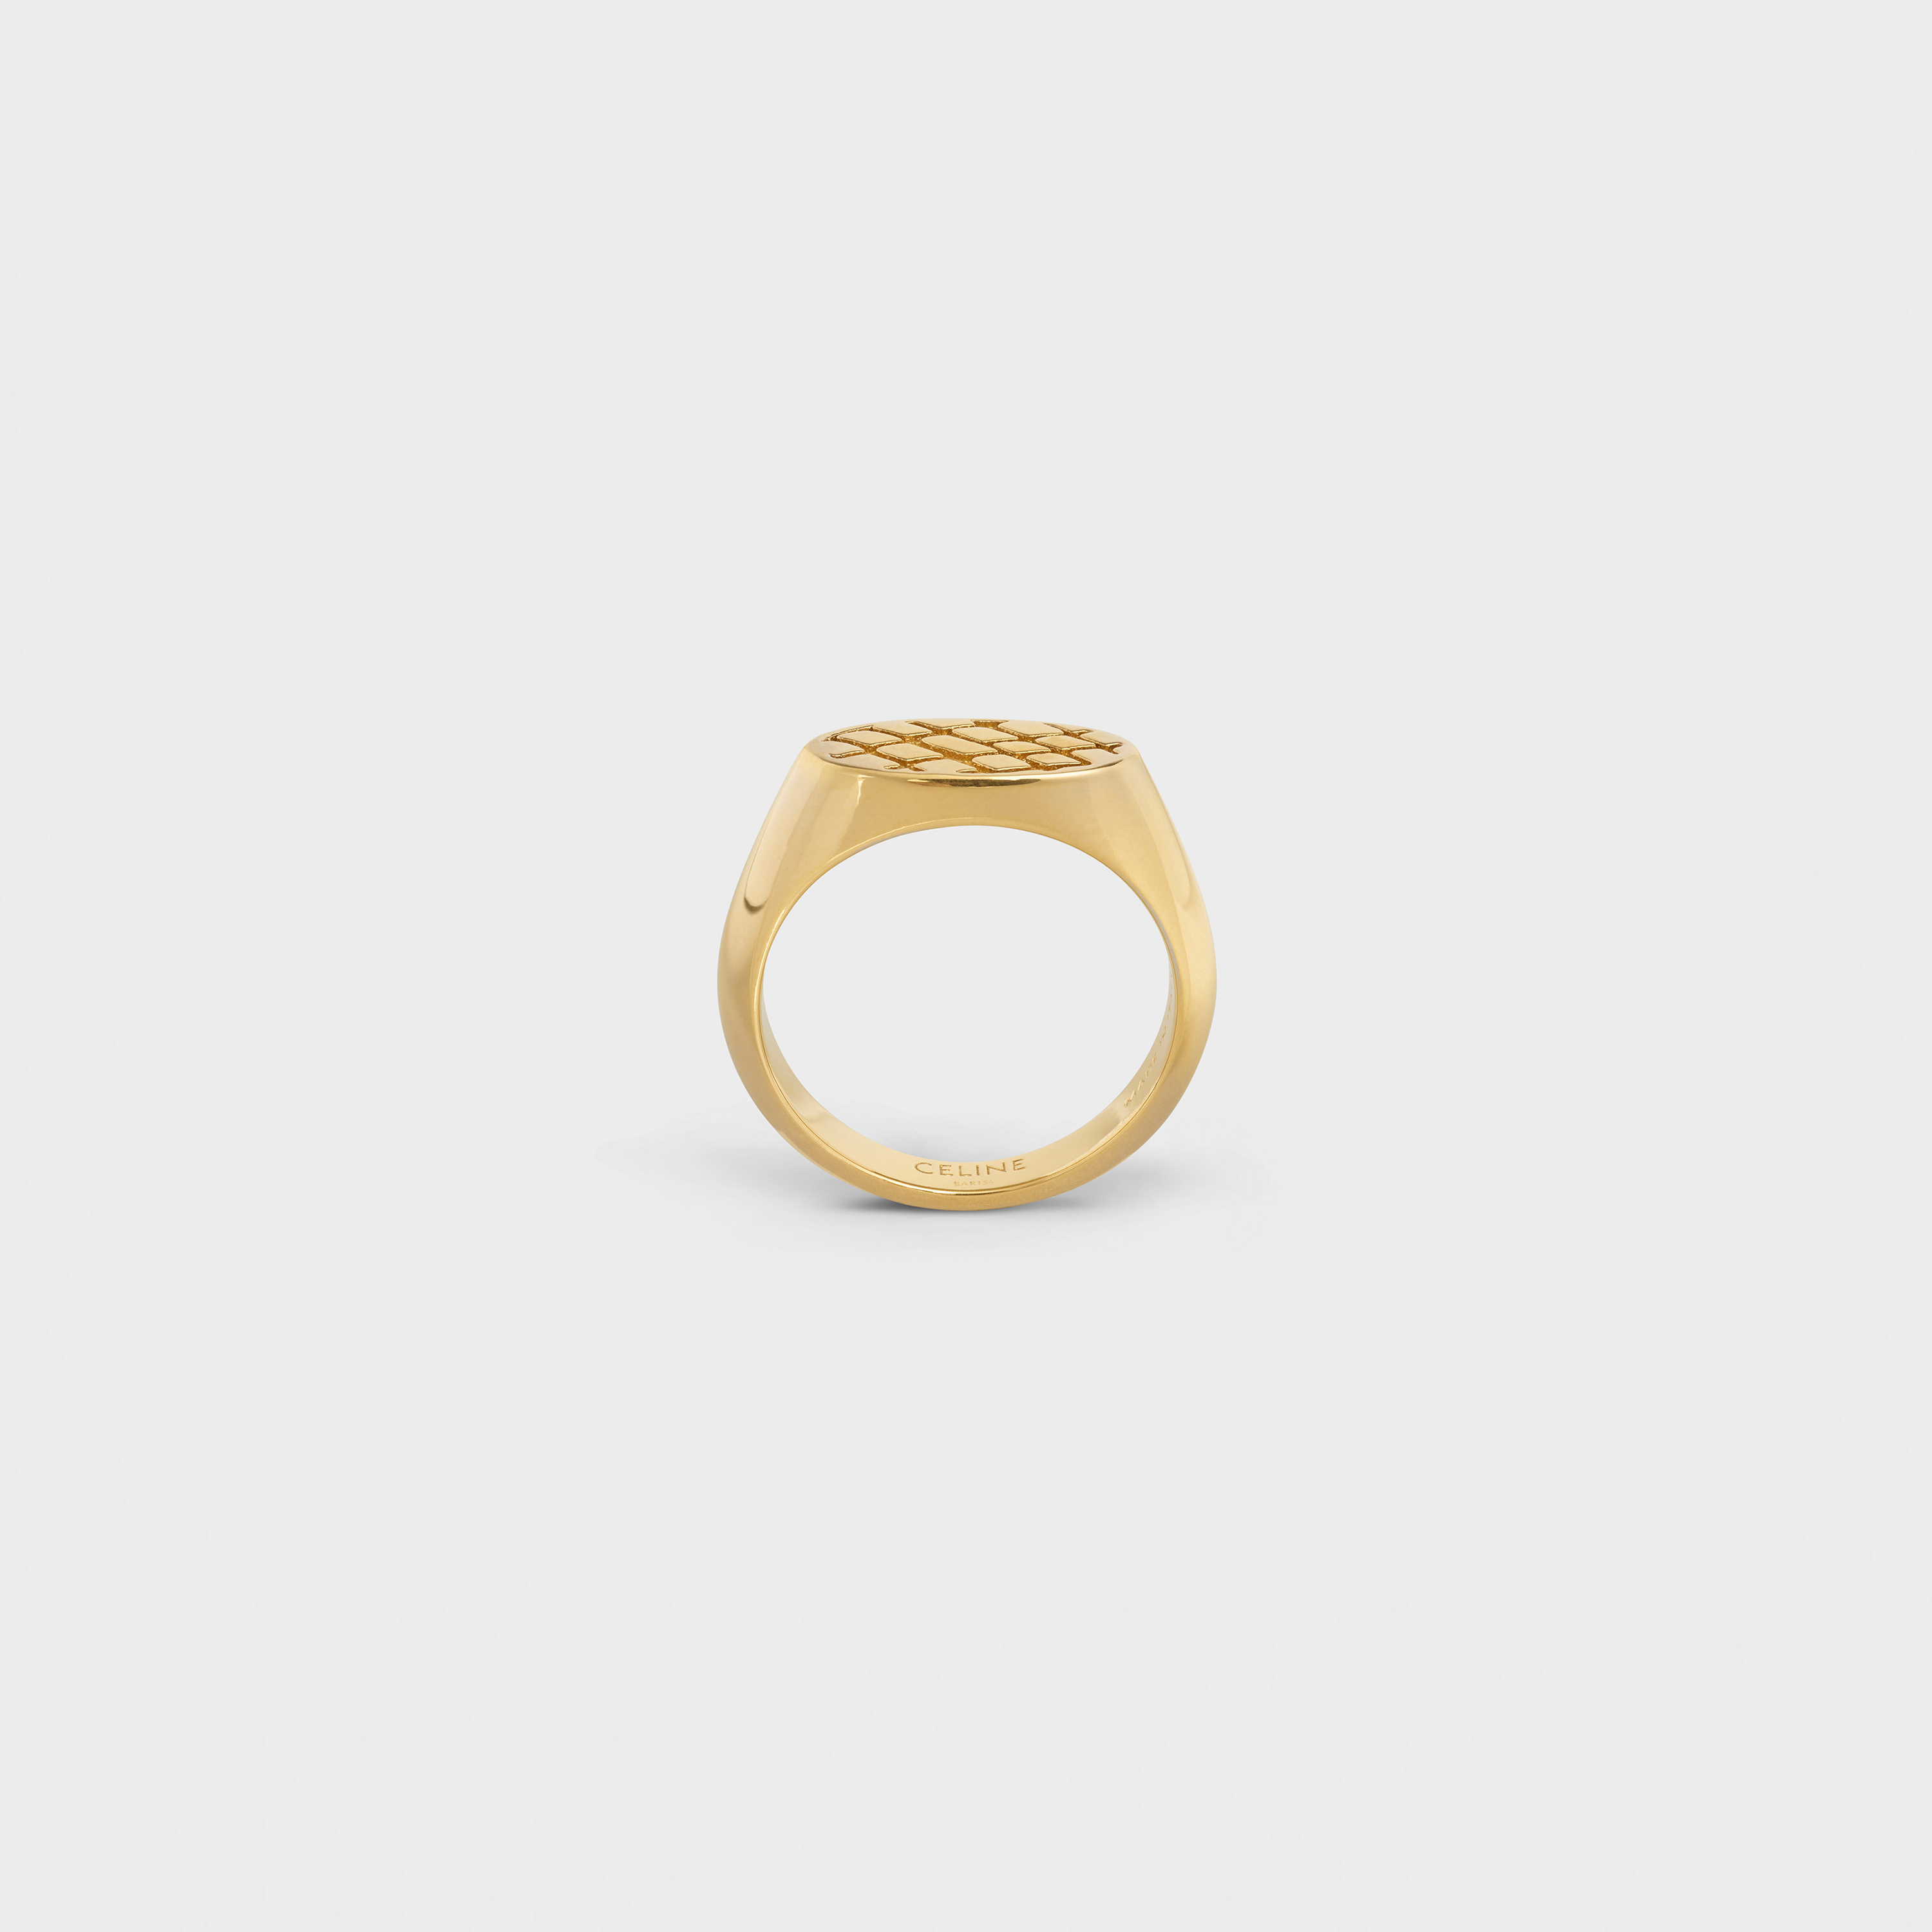 Celine Animals Small Ring in Brass with Vintage Gold finish | CELINE